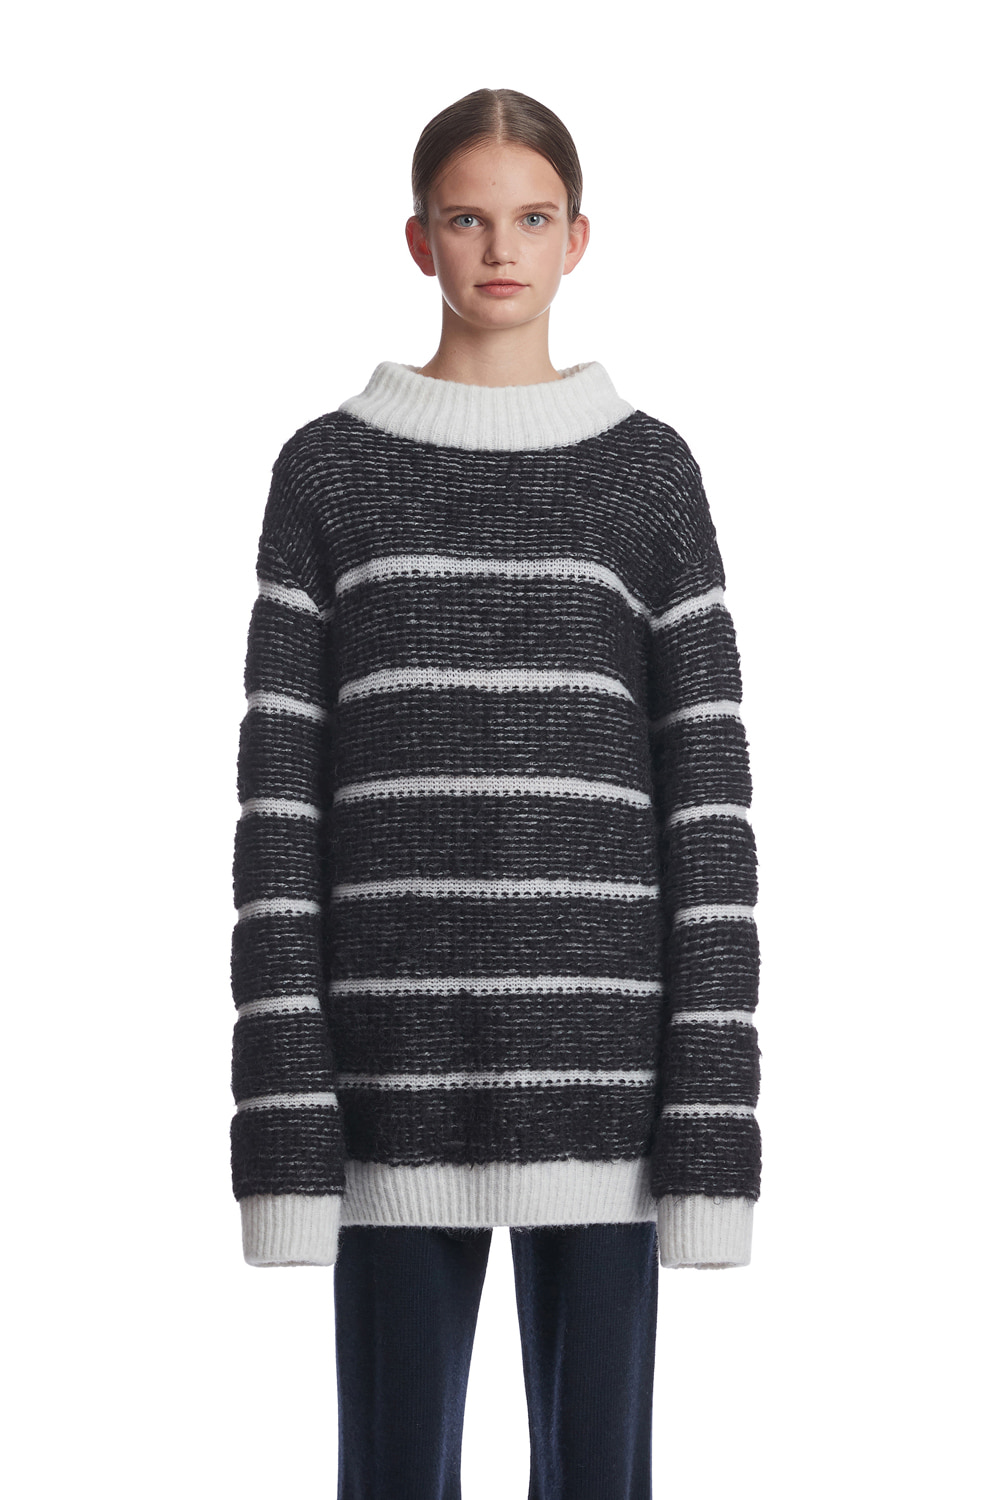 10월 16일 예약배송  Boucle Stripe Knit Sweater